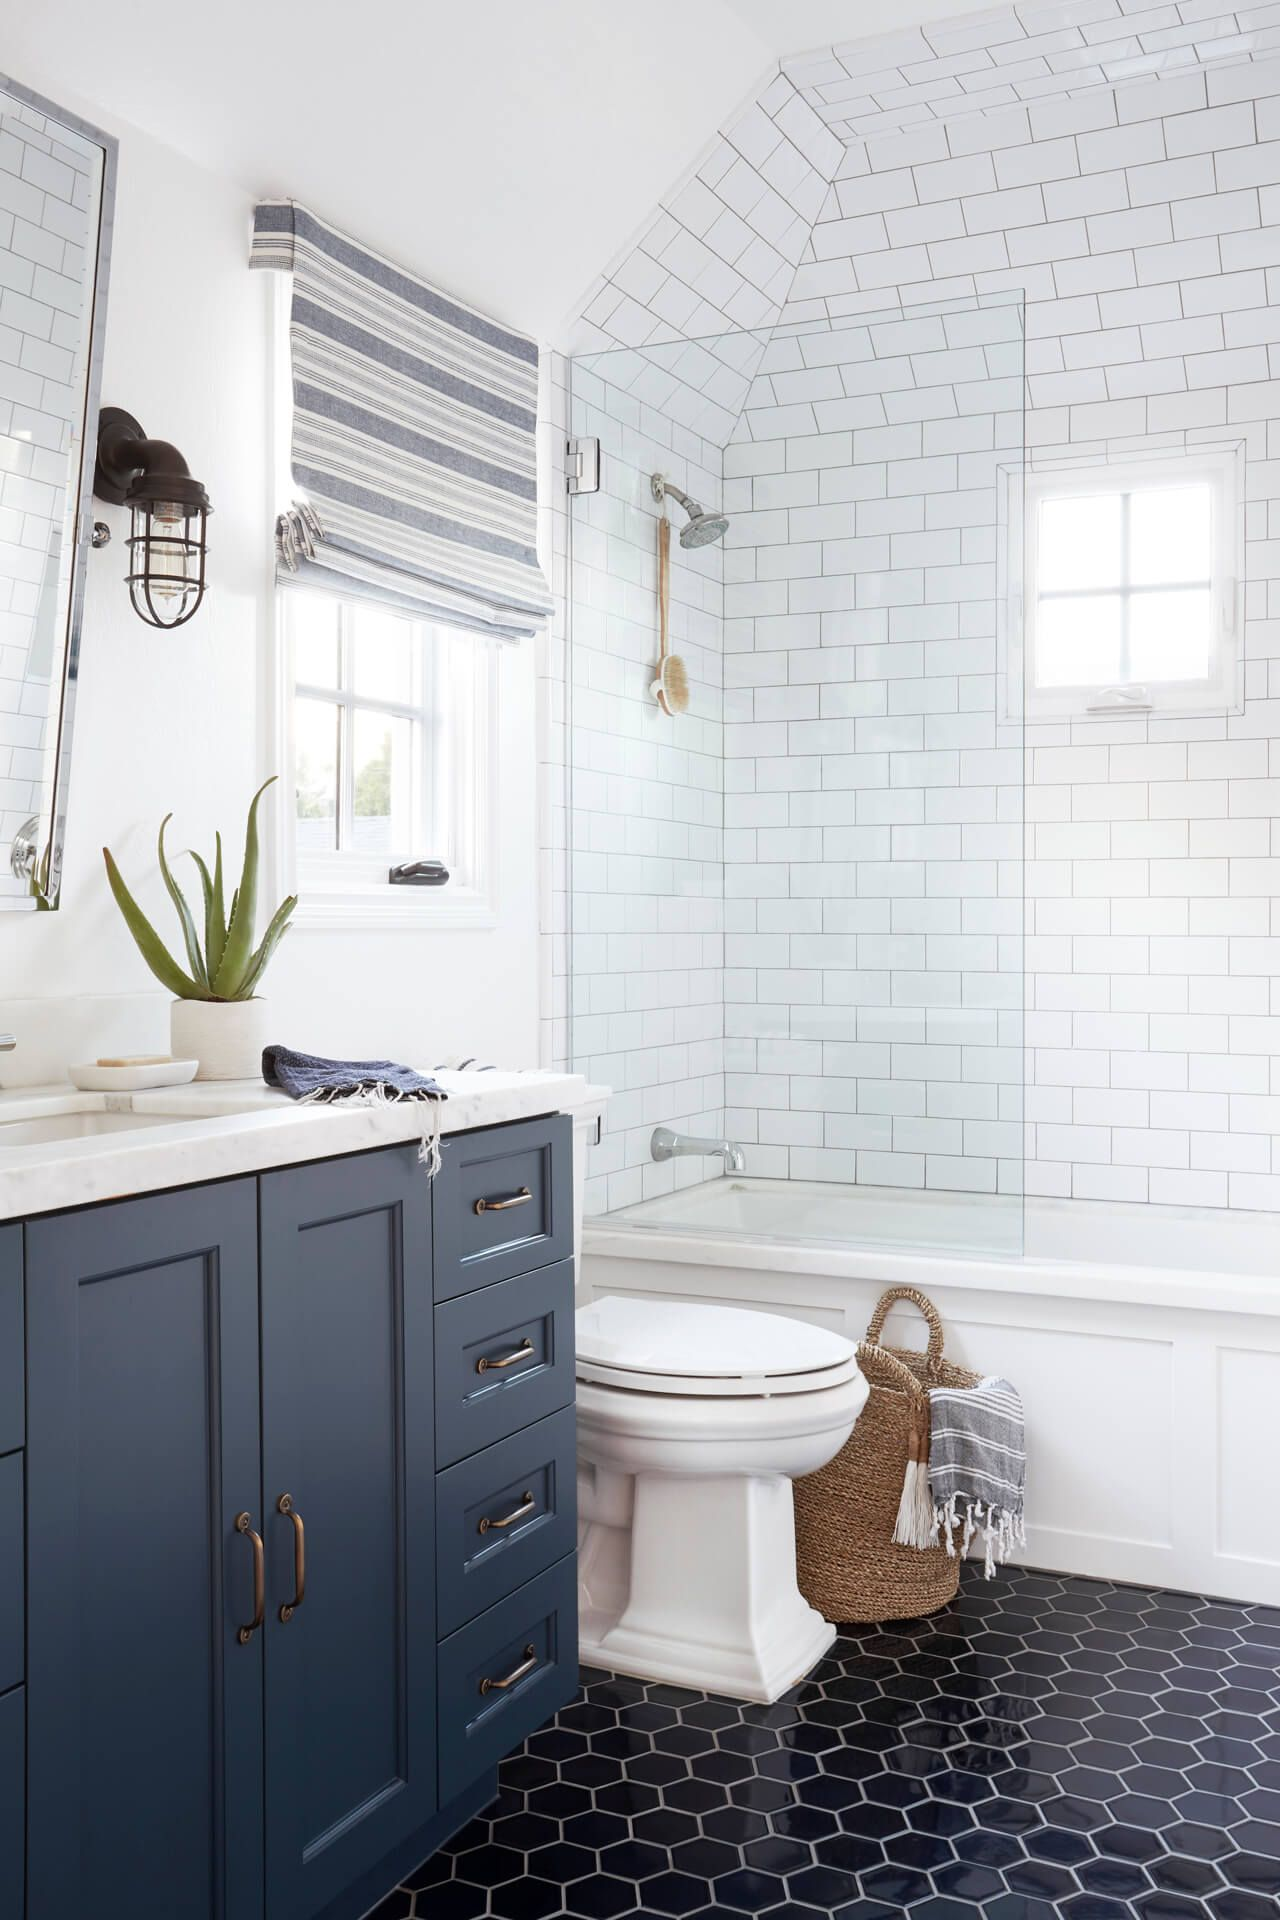 7 Pretty Bathroom Floor Tile Ideas To Pin Even If You Re Not